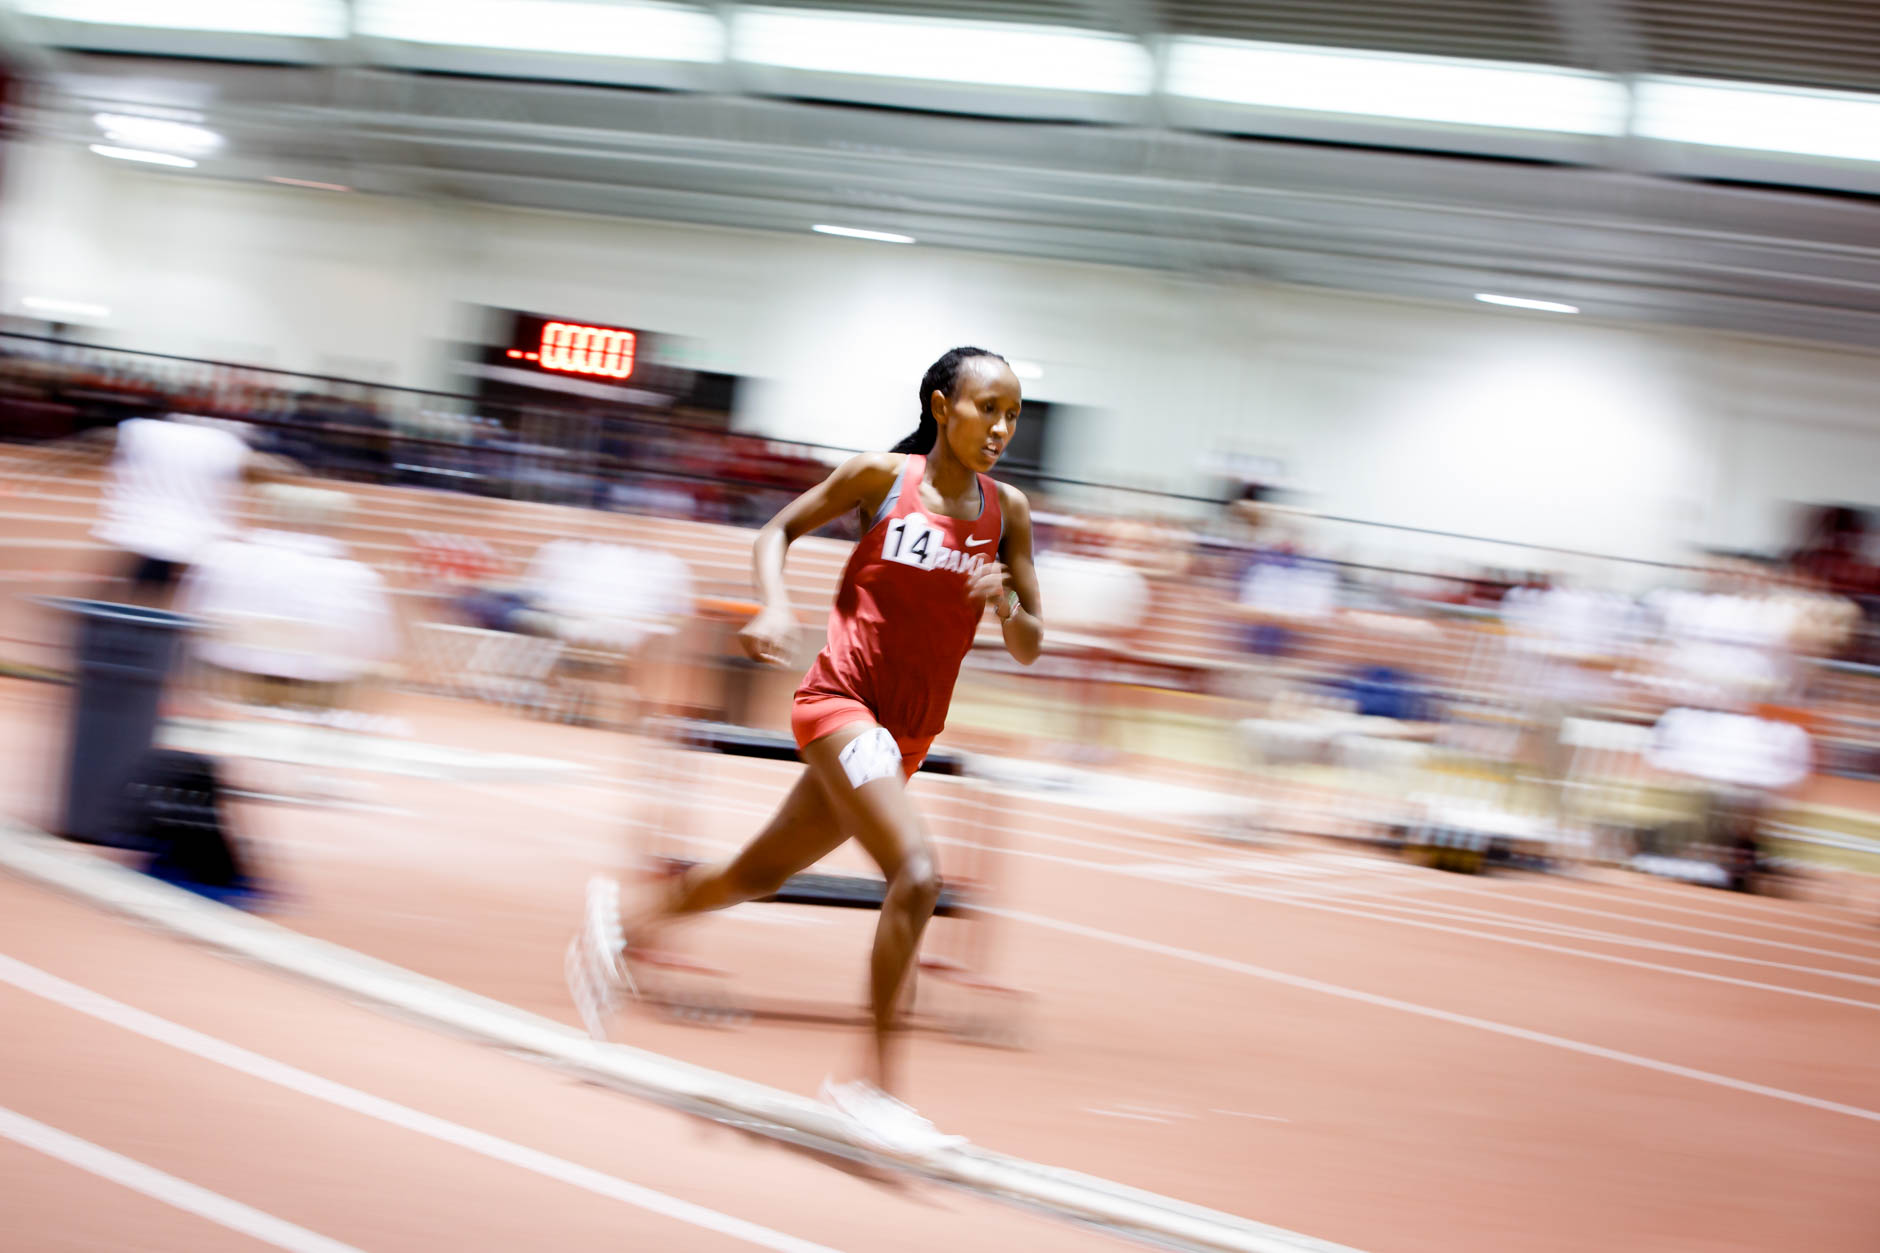 Alabama's Mercy Chelangat competes in the 3000 meter run during the Indiana University Relays in Bloomington, Indiana on Saturday, Feb. 1, 2020. (Photo by James Brosher)